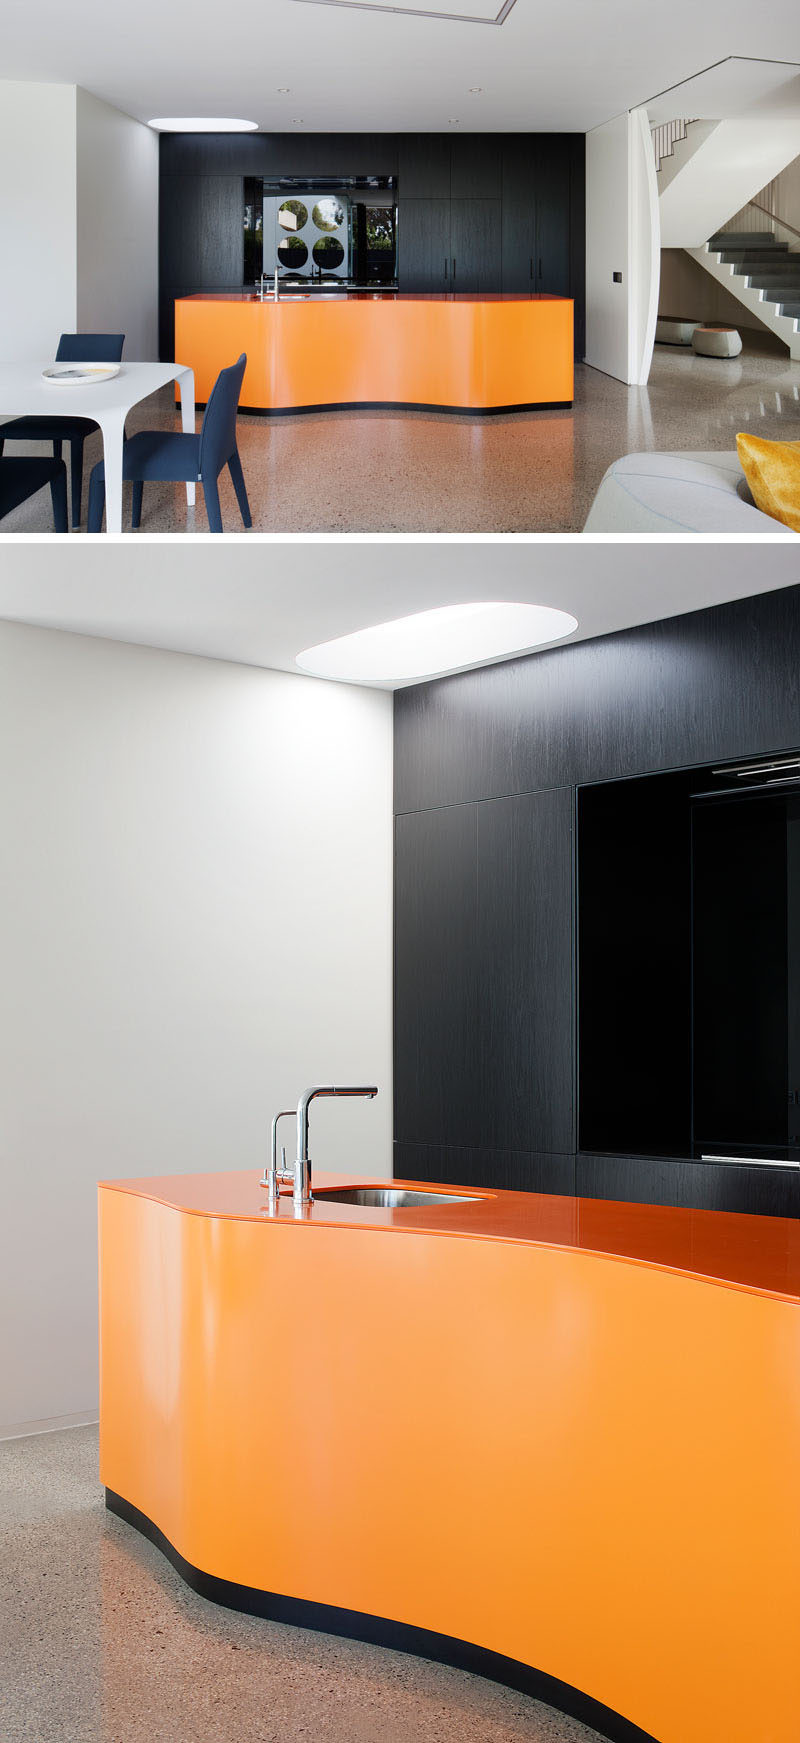 This boldly colored modern kitchen has a curved orange island, while the black cabinets, with an integrated fridge, provide a strong contrast and help to make the color of the island 'pop'. The flooring throughout the house is a hand-crafted polished concrete floor.